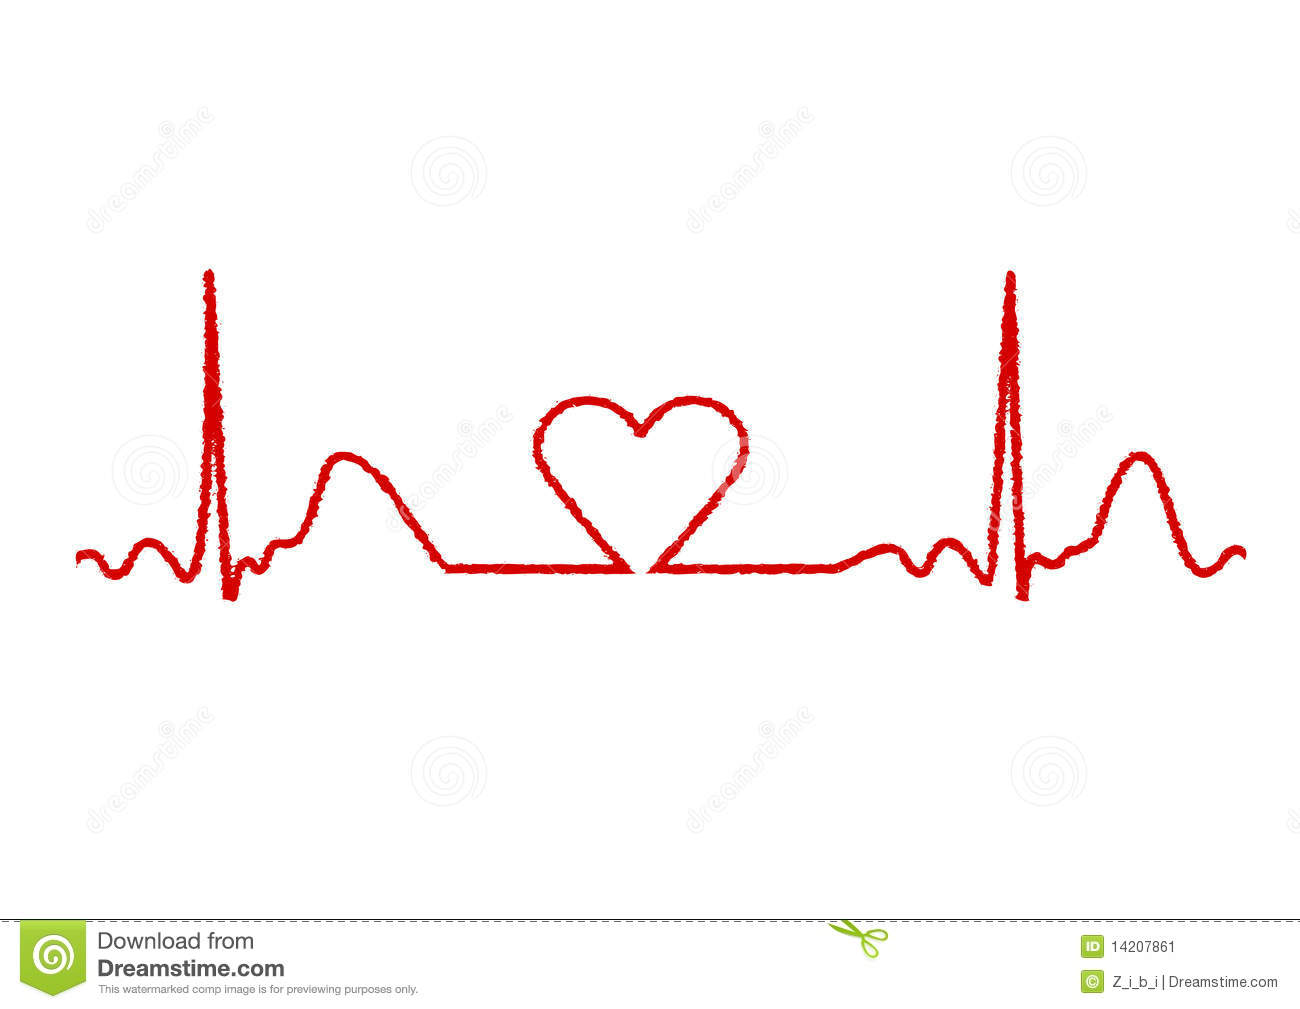 Clip Art Heart Beat Li...